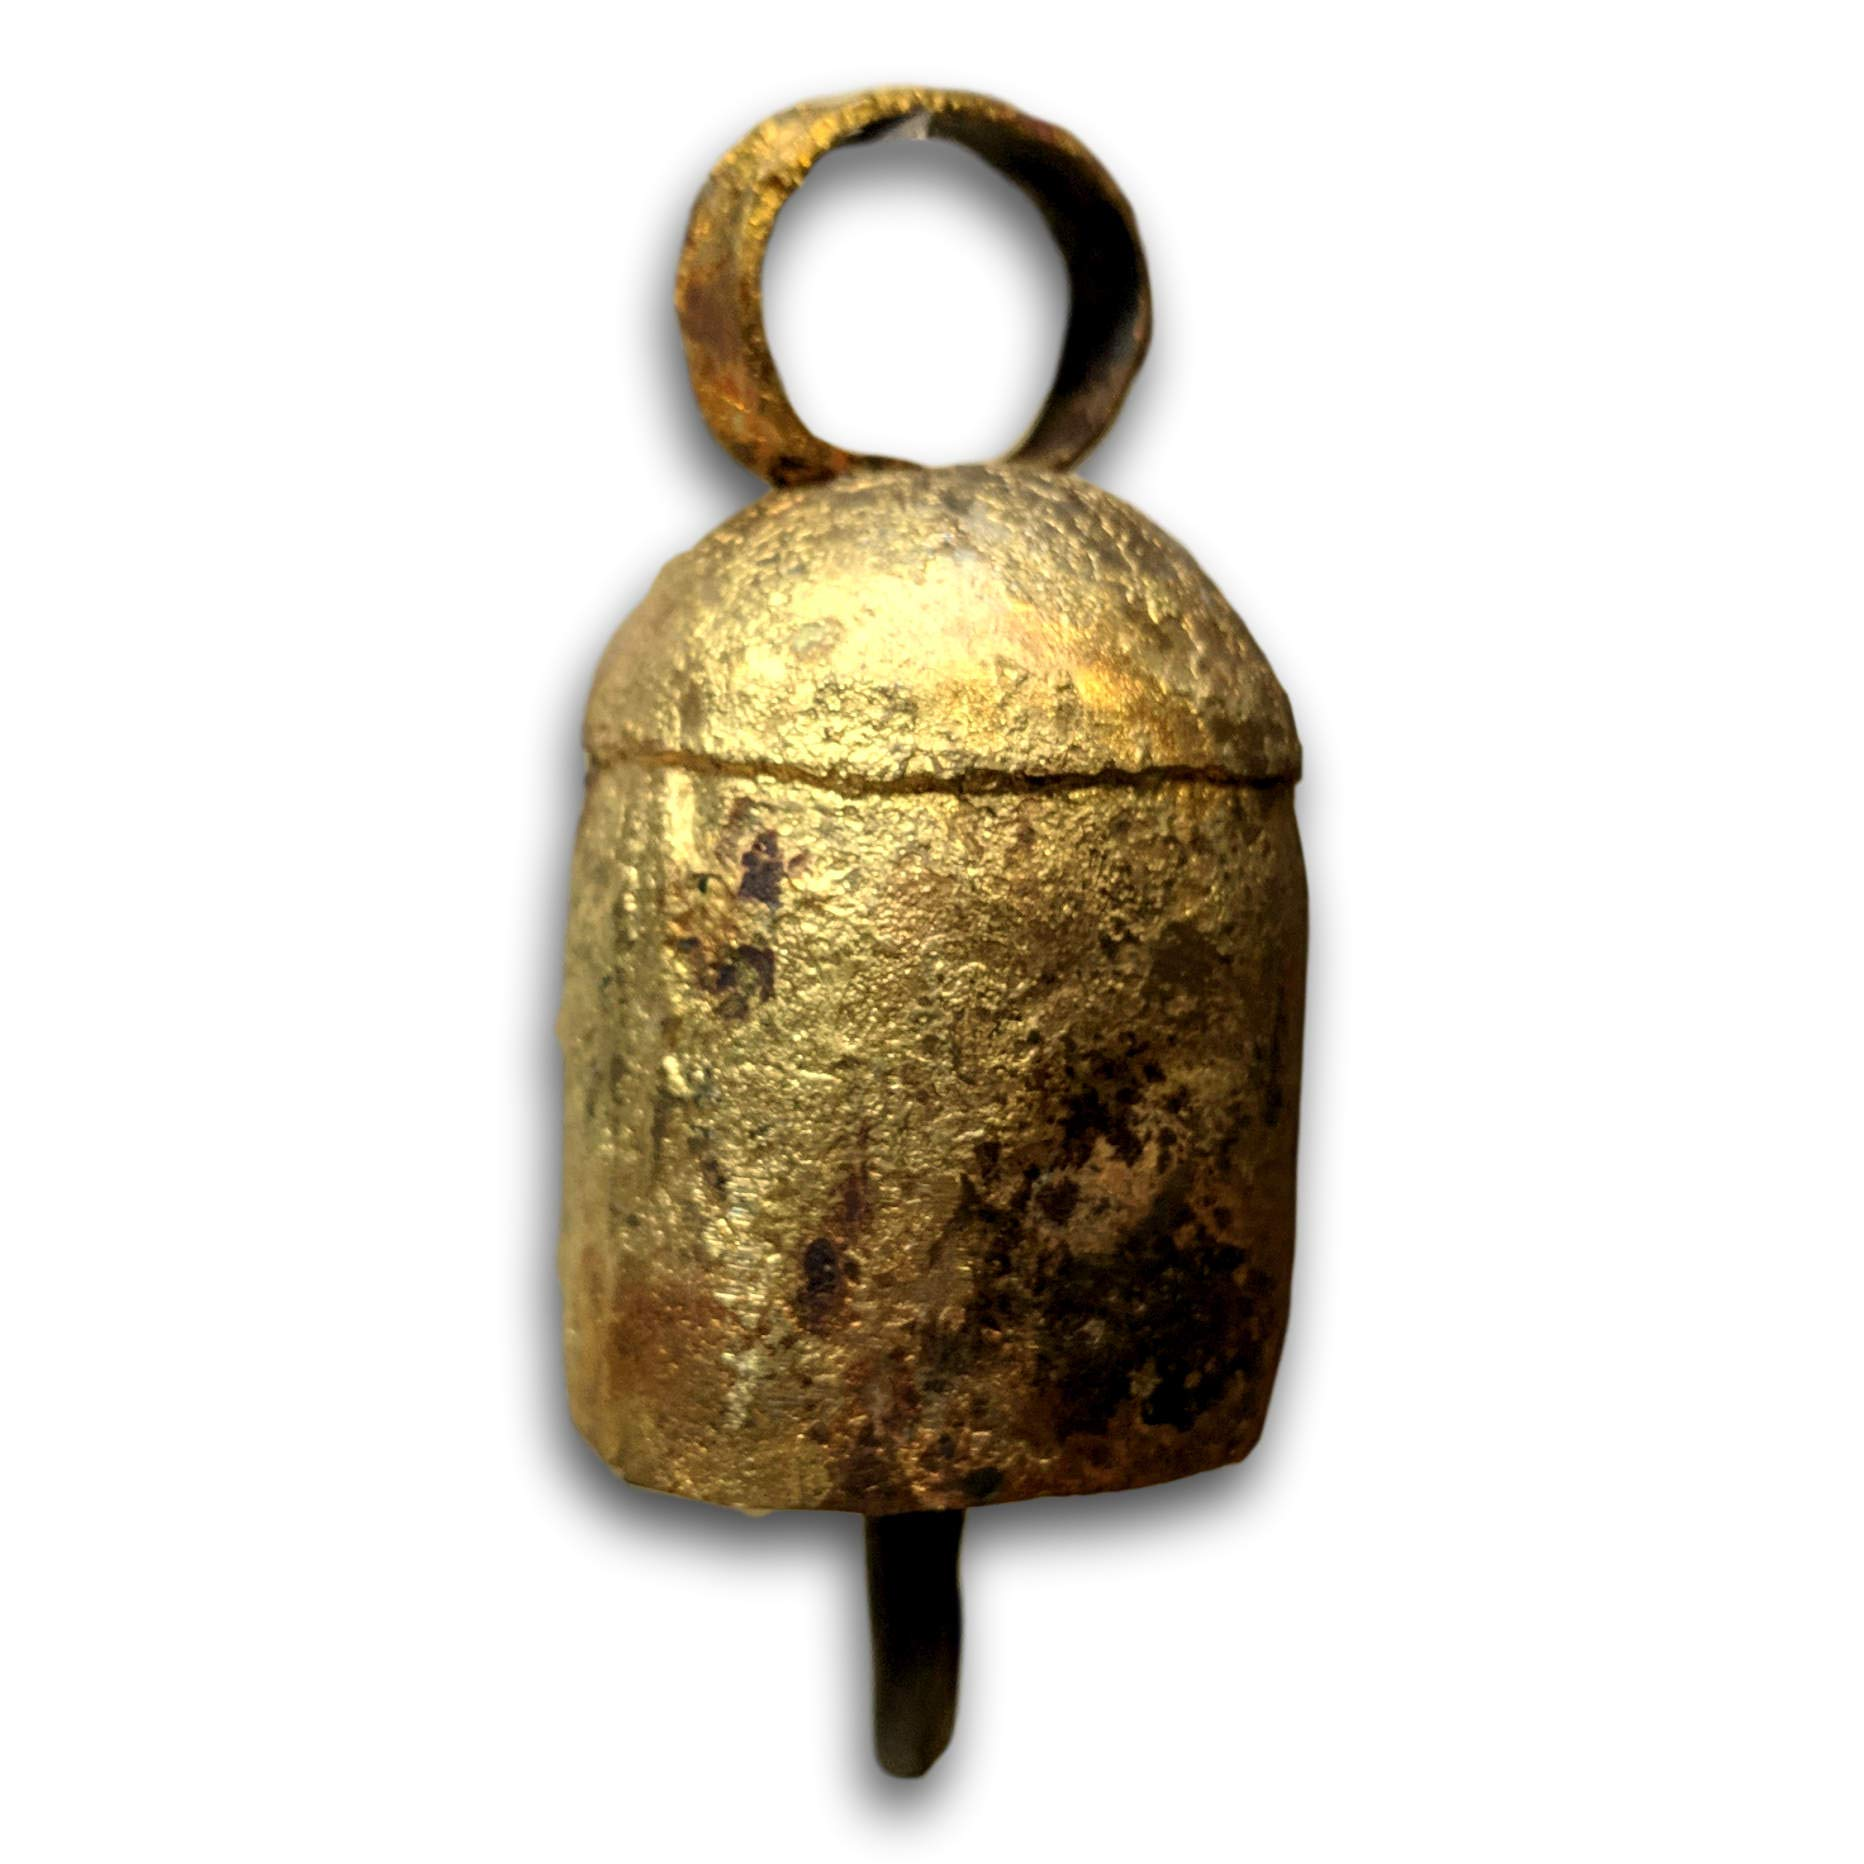 One Dozen 2.5 inches high Rounded Top Tin Bells with Metal Striker Bell Chime by India Arts